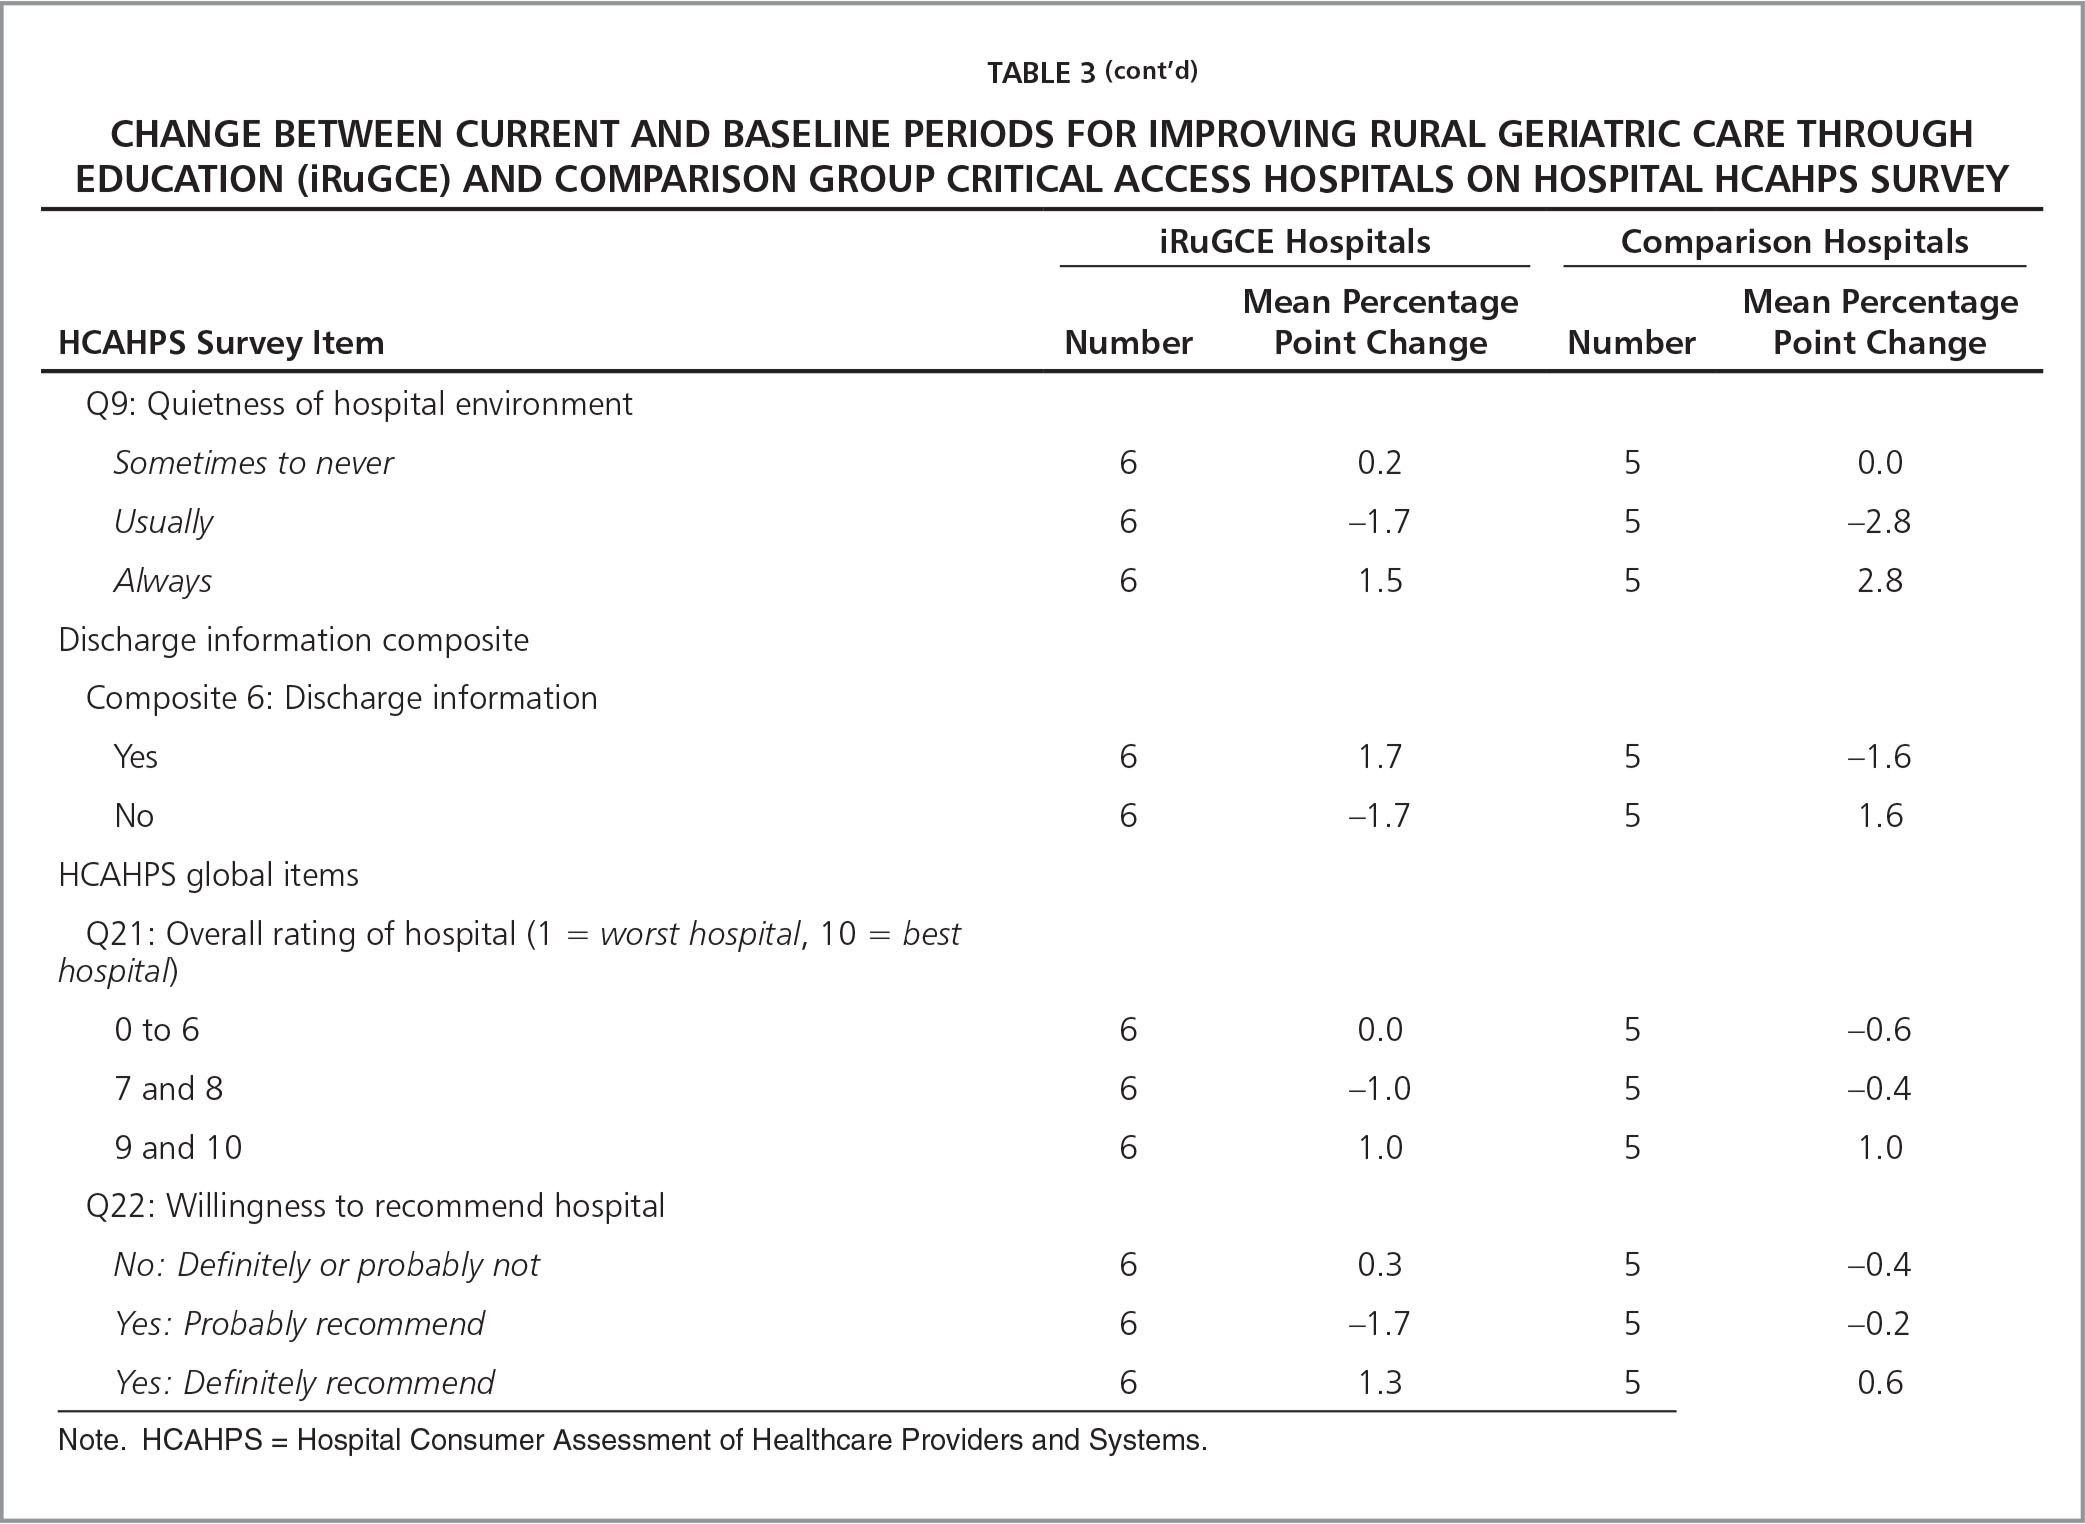 Change Between Current and Baseline Periods for Improving Rural Geriatric Care Through Education (iRuGCE) and Comparison Group Critical Access Hospitals on Hospital HCAHPS Survey